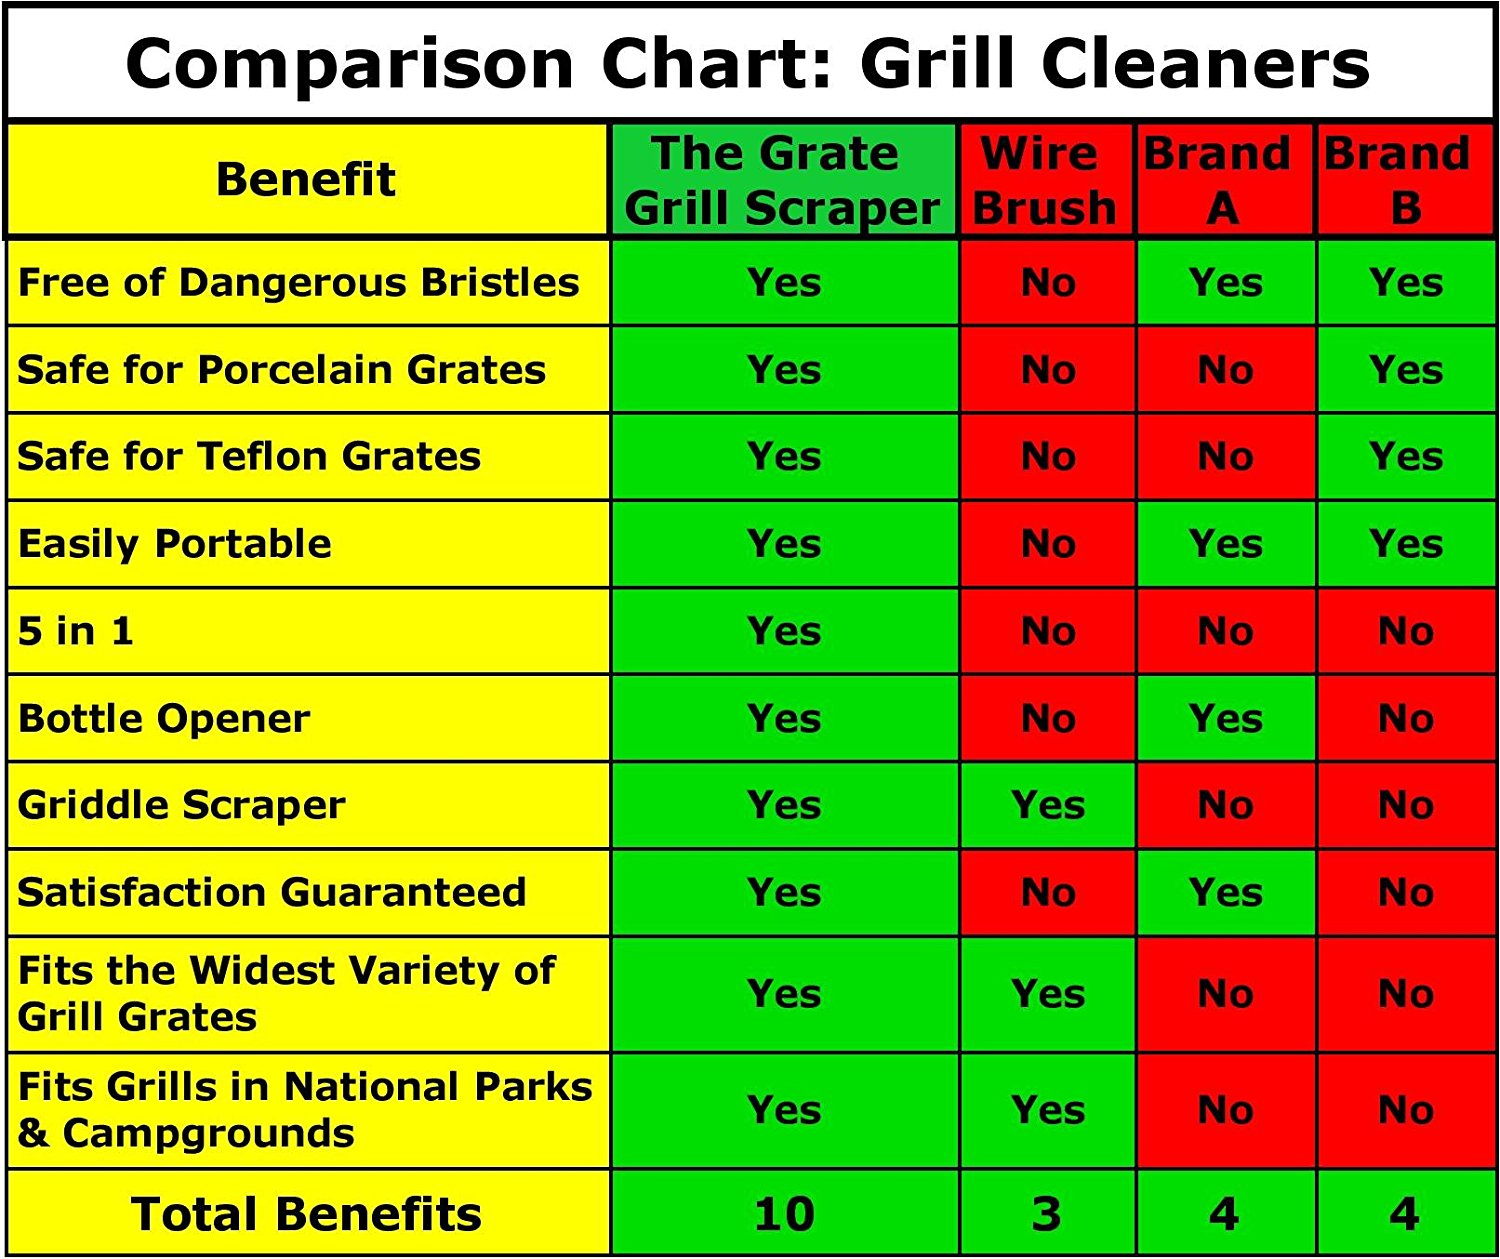 S4490 - The Grate Grill Scraper - Brass Barbeque Cleaner